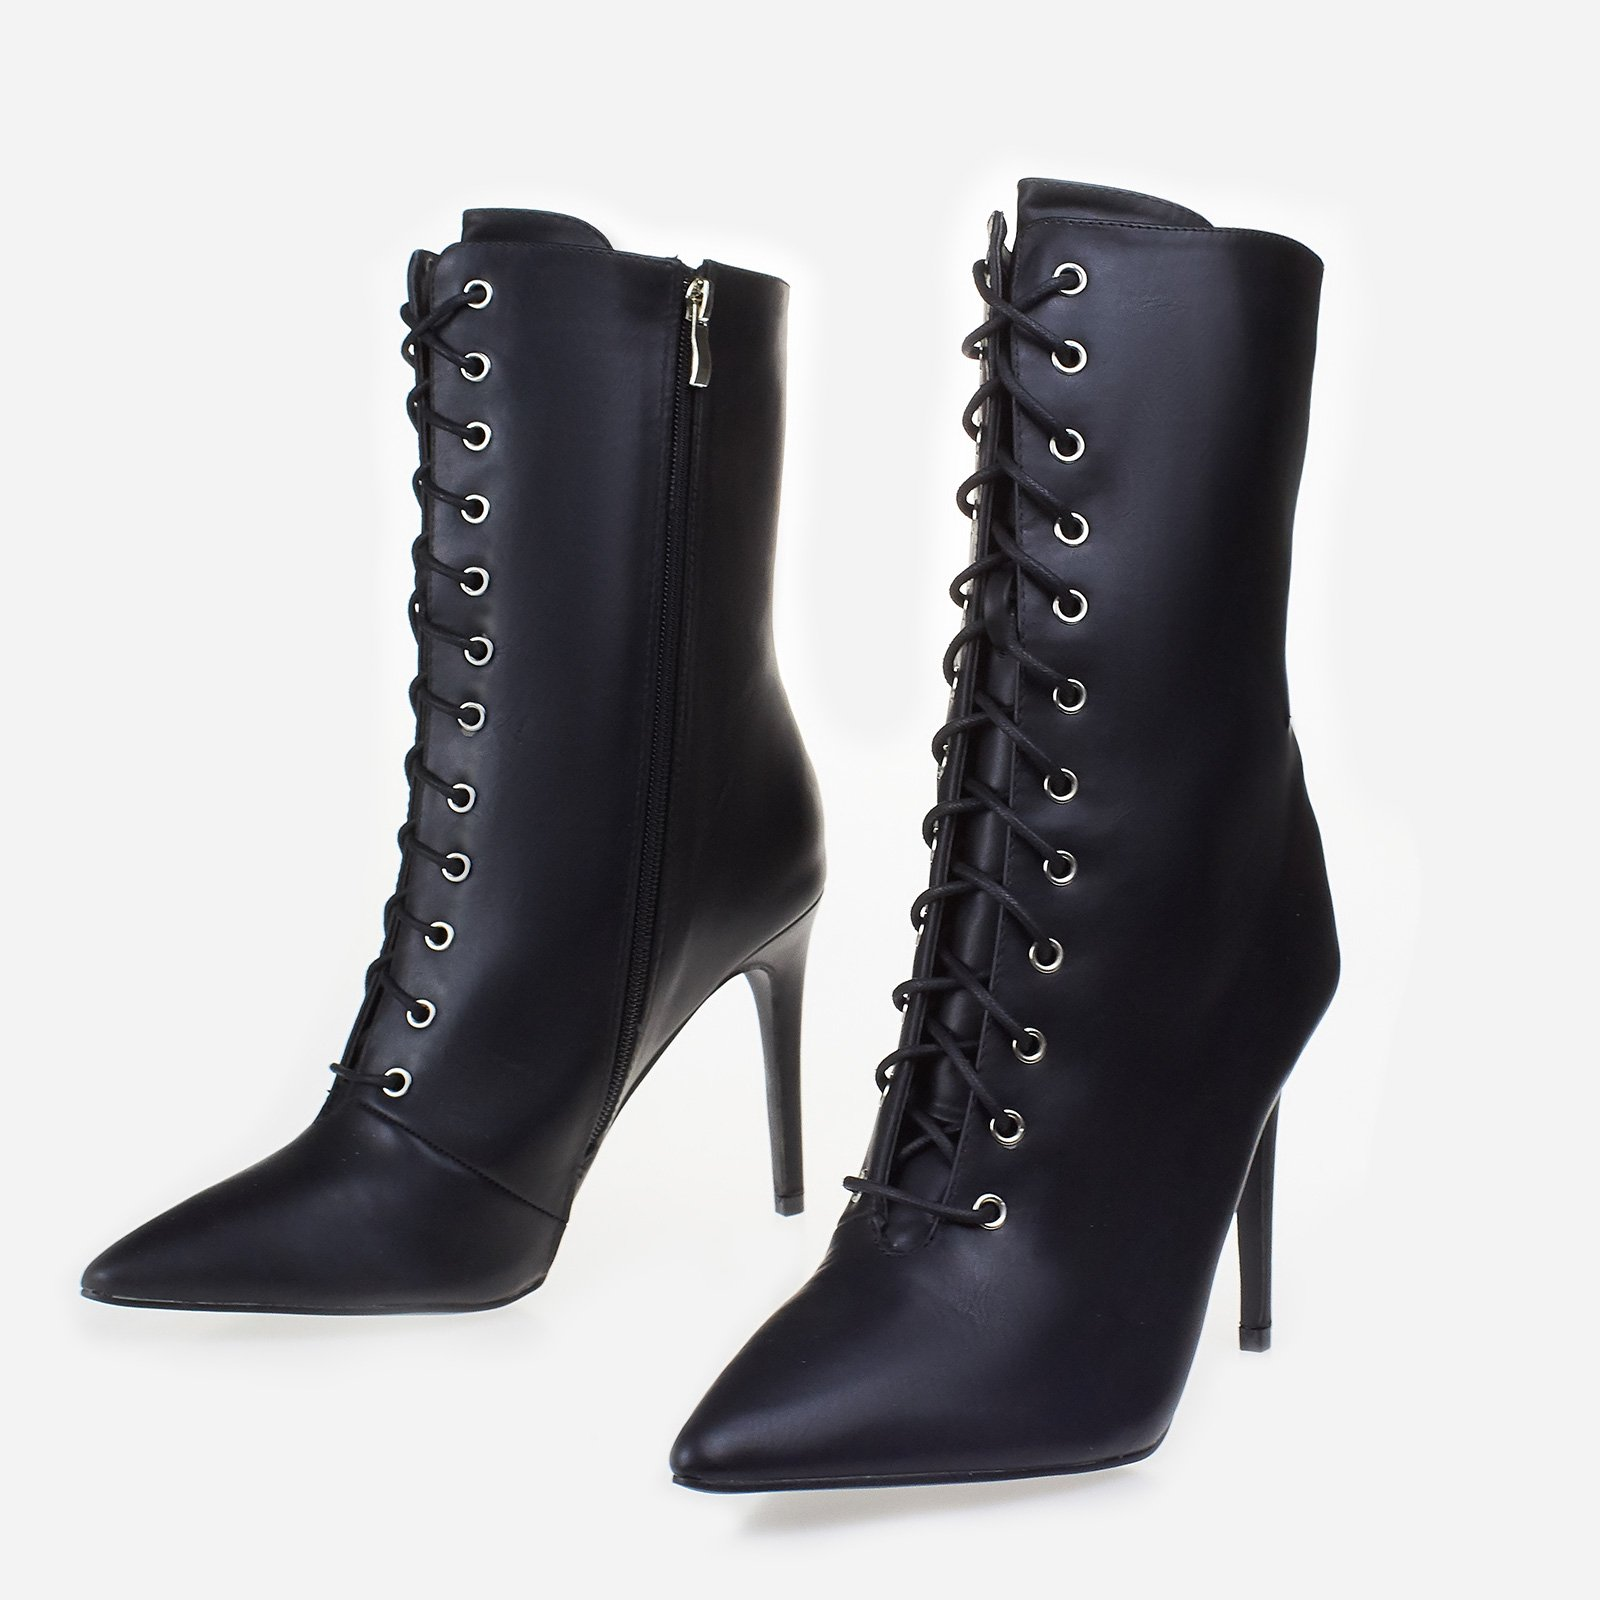 Cate Lace Up Ankle Boot In Black Faux Leather